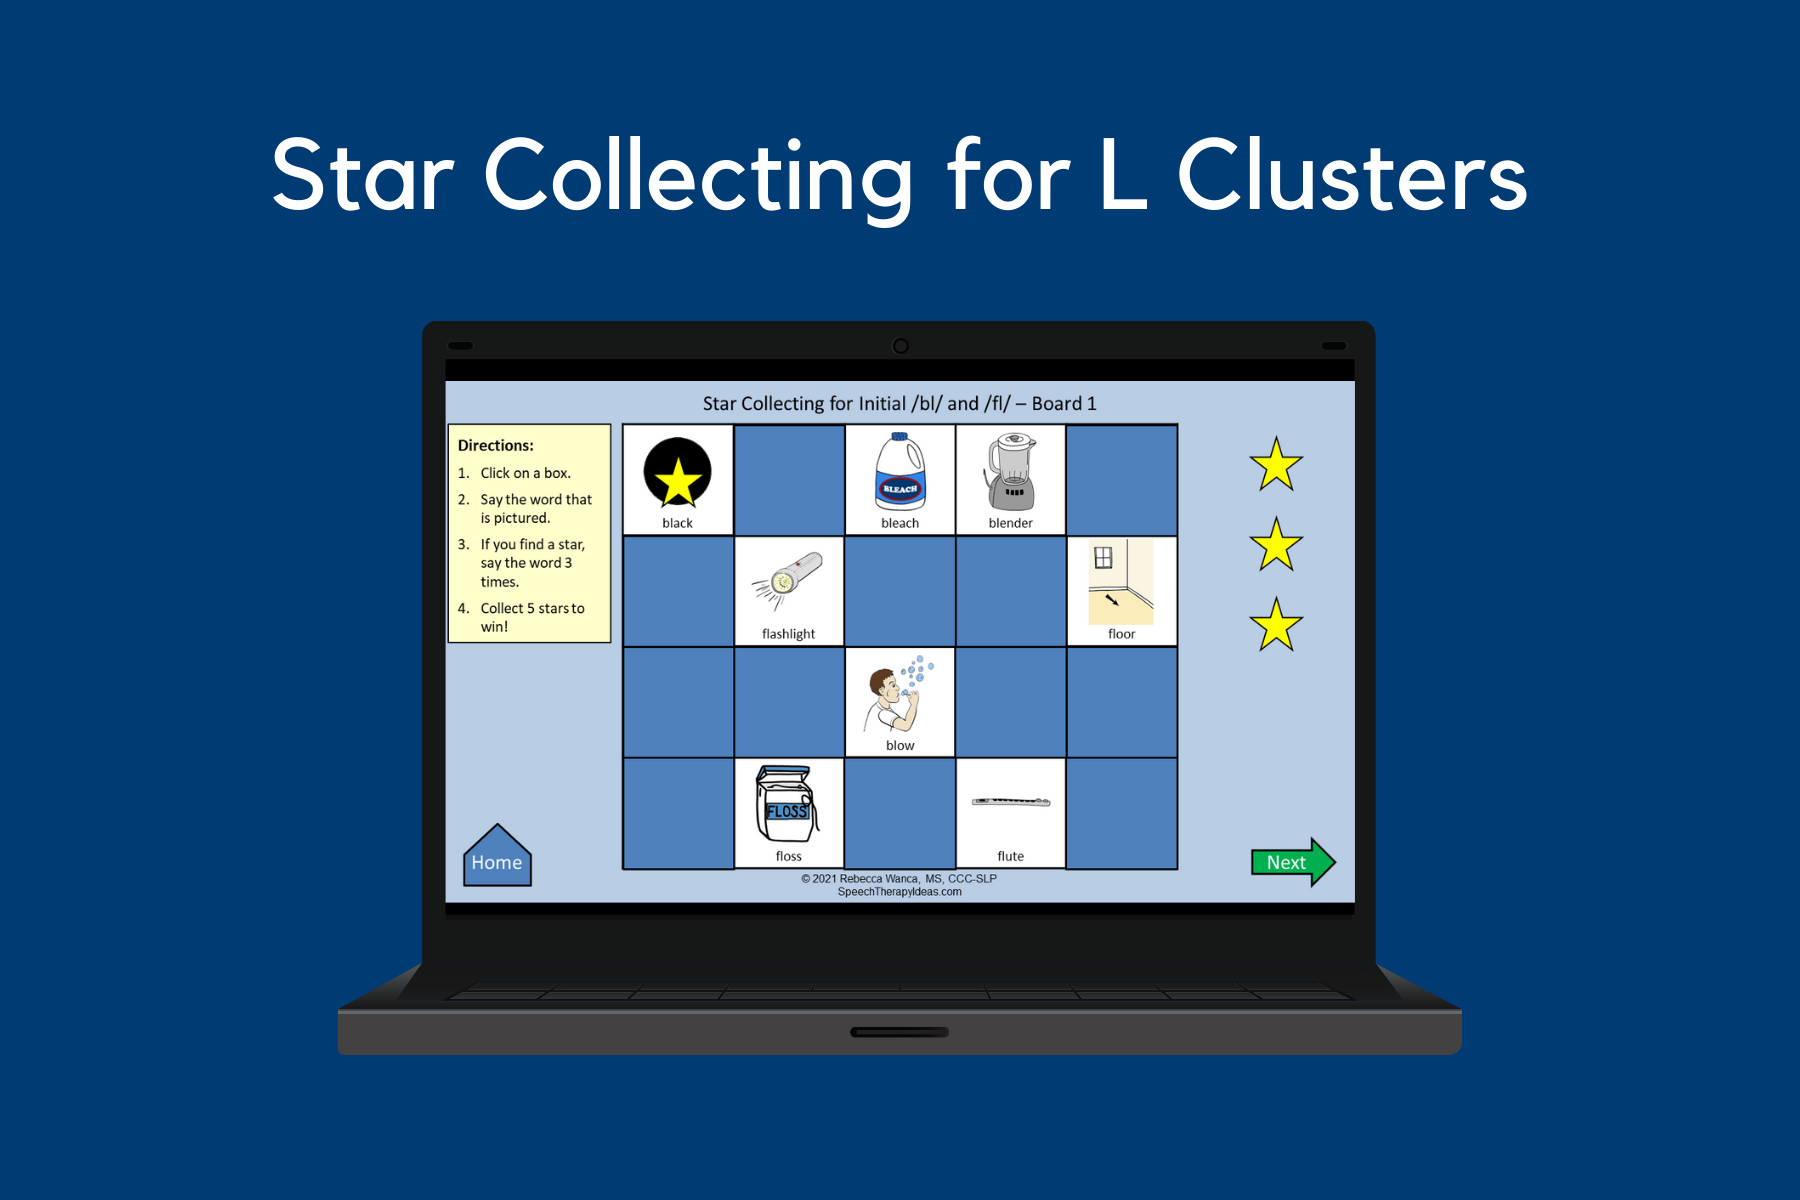 Star Collecting For L Clusters